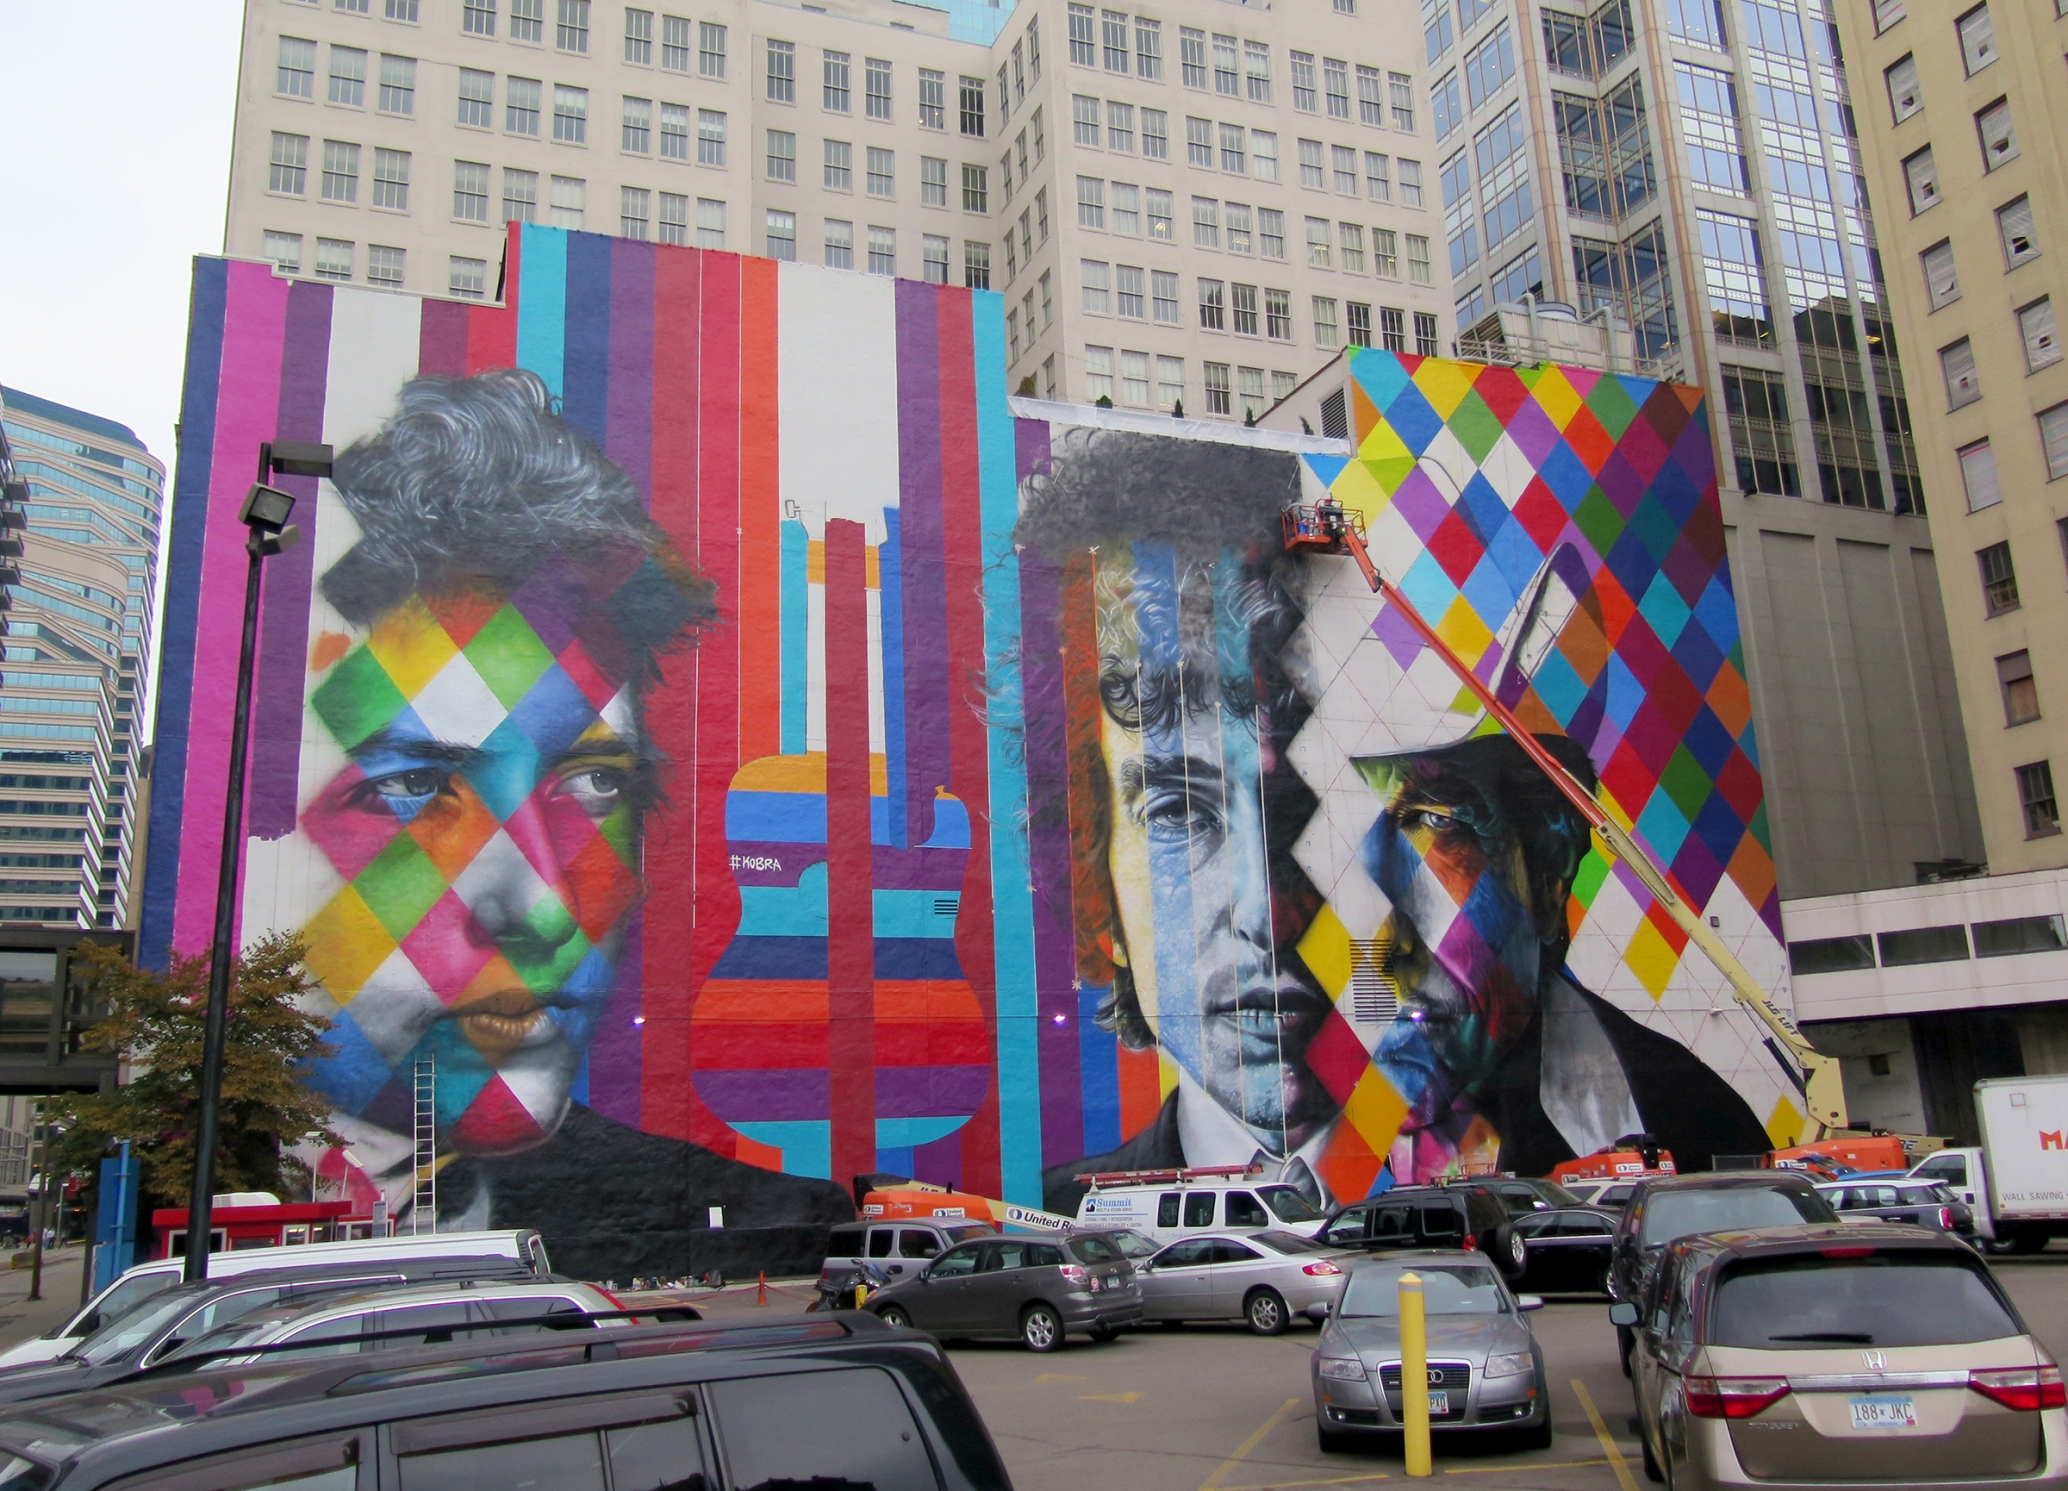 The blank white wall facing the corner of 5th and Hennipen Av has become the 'canvas' for a mural by Brazillian artist Kobra- with multiple images of Bob Dylan. Photo taken Wednesday 09/02.